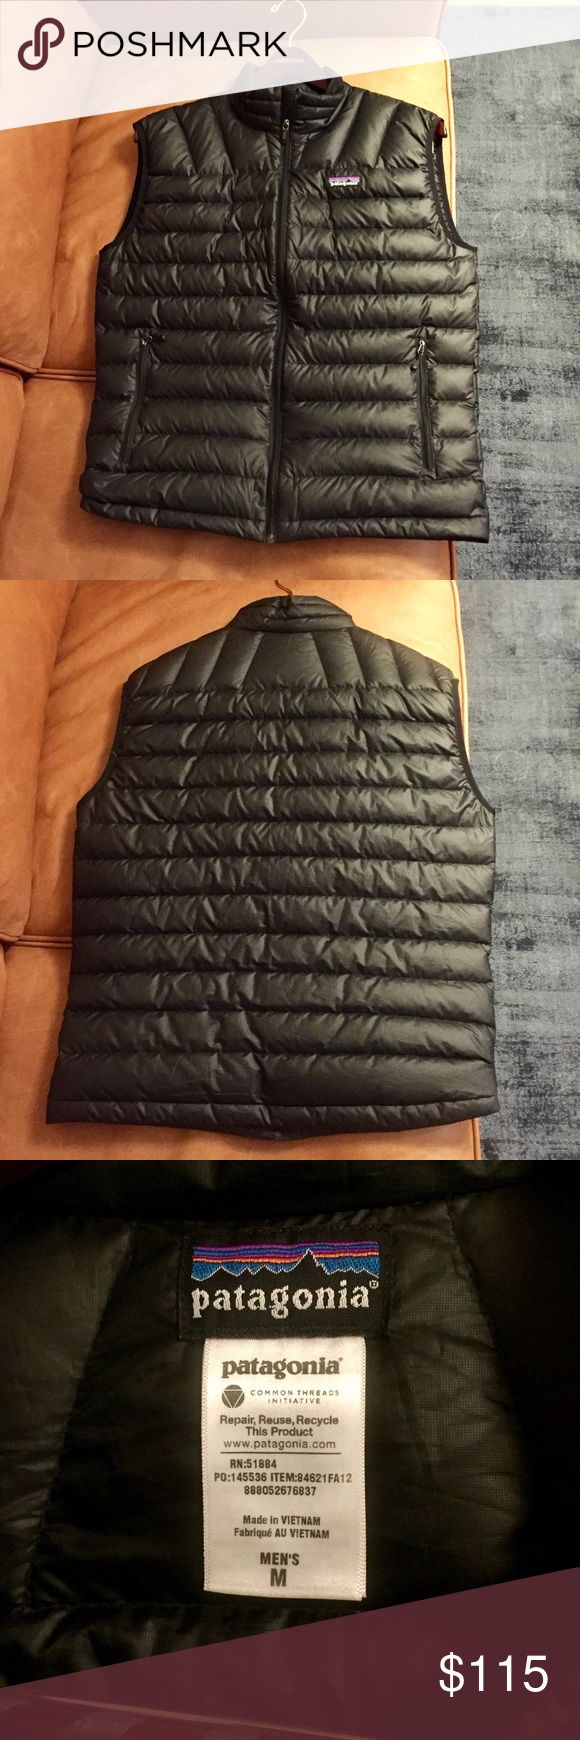 """Men's M Black """"Patagonia Down Sweater Vest"""" Men's M black """"Patagonia Down Sweater Vest"""" - still in stores. Perfect shape and very warm! OFFERS ARE ACCEPTED! Patagonia Jackets & Coats Vests"""